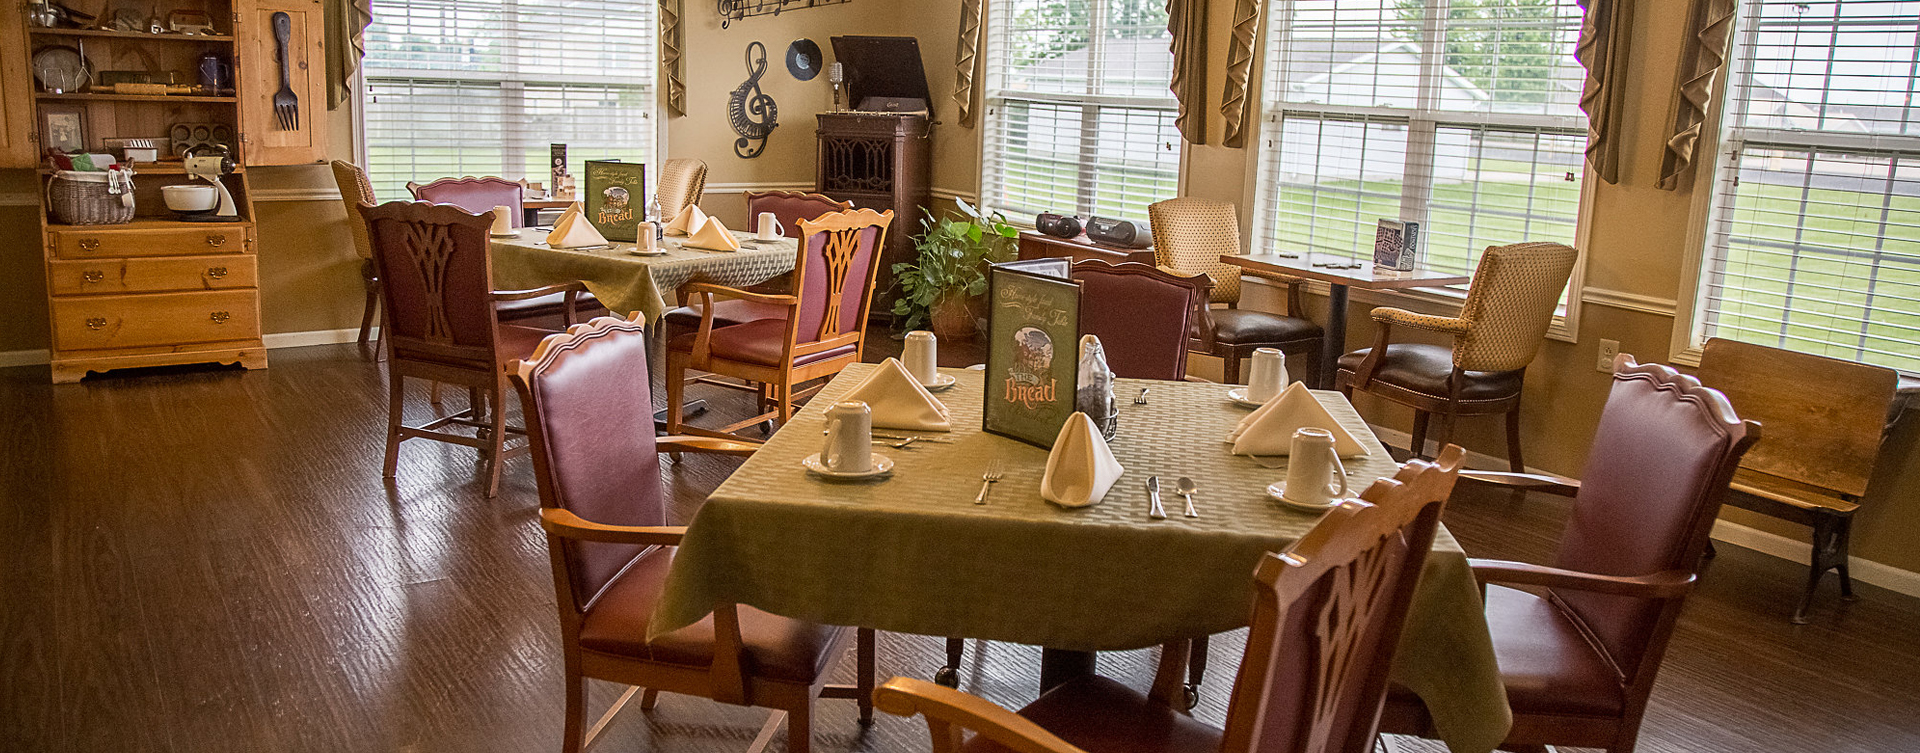 Mary B's country kitchen evokes a sense of home and reconnects residents to past life skills at Bickford of Burlington